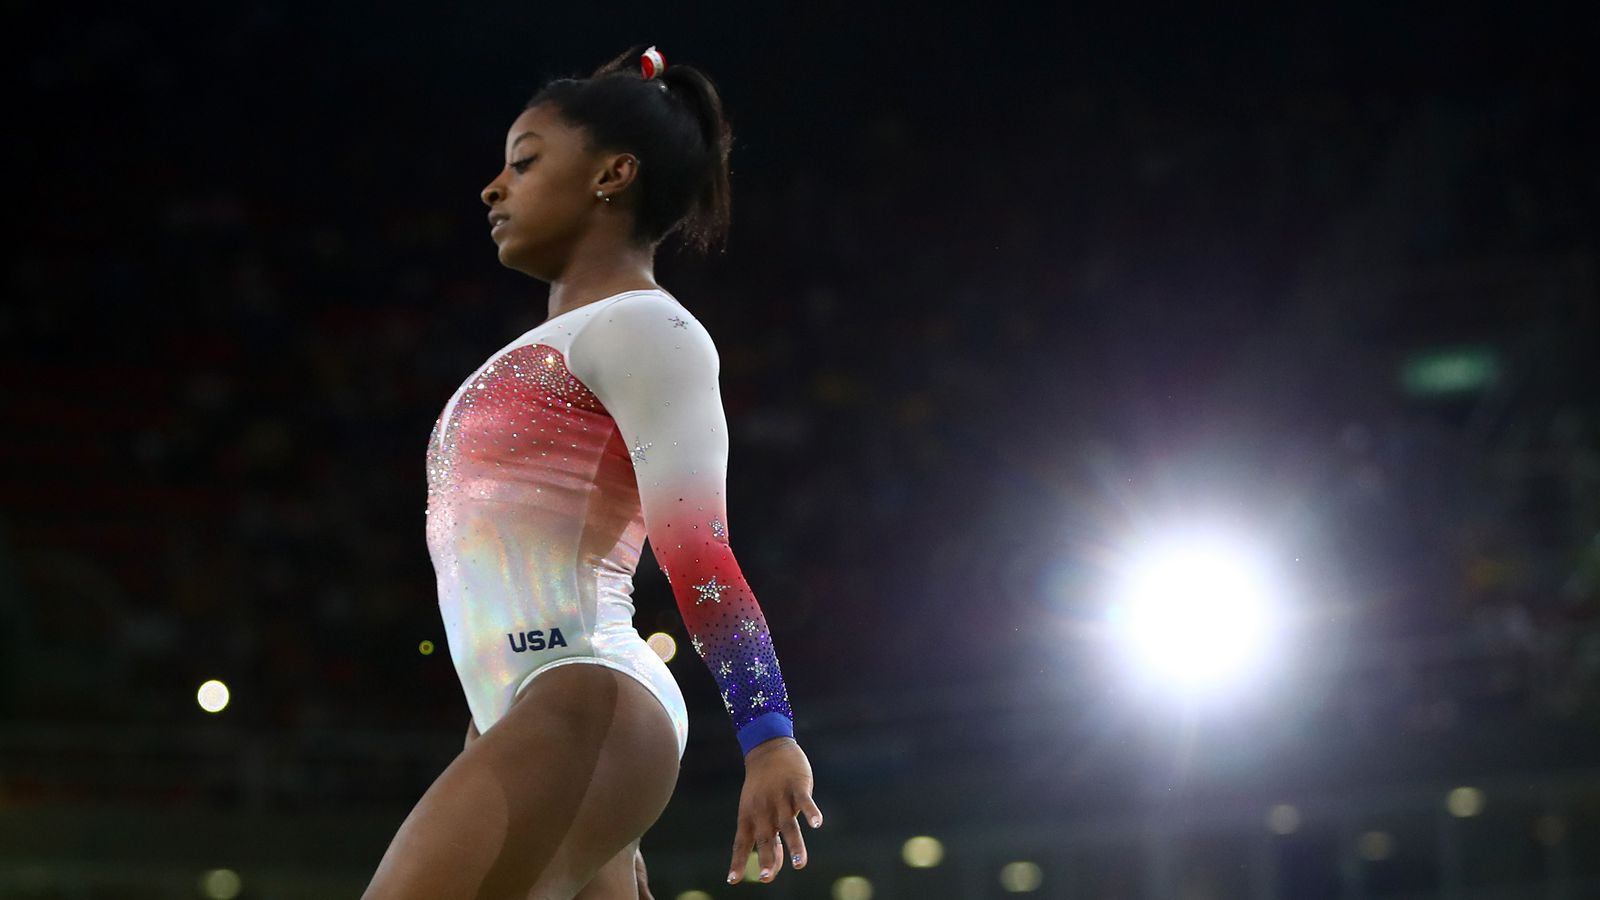 Simone Biles Favored To Win Dancing With The Stars Over